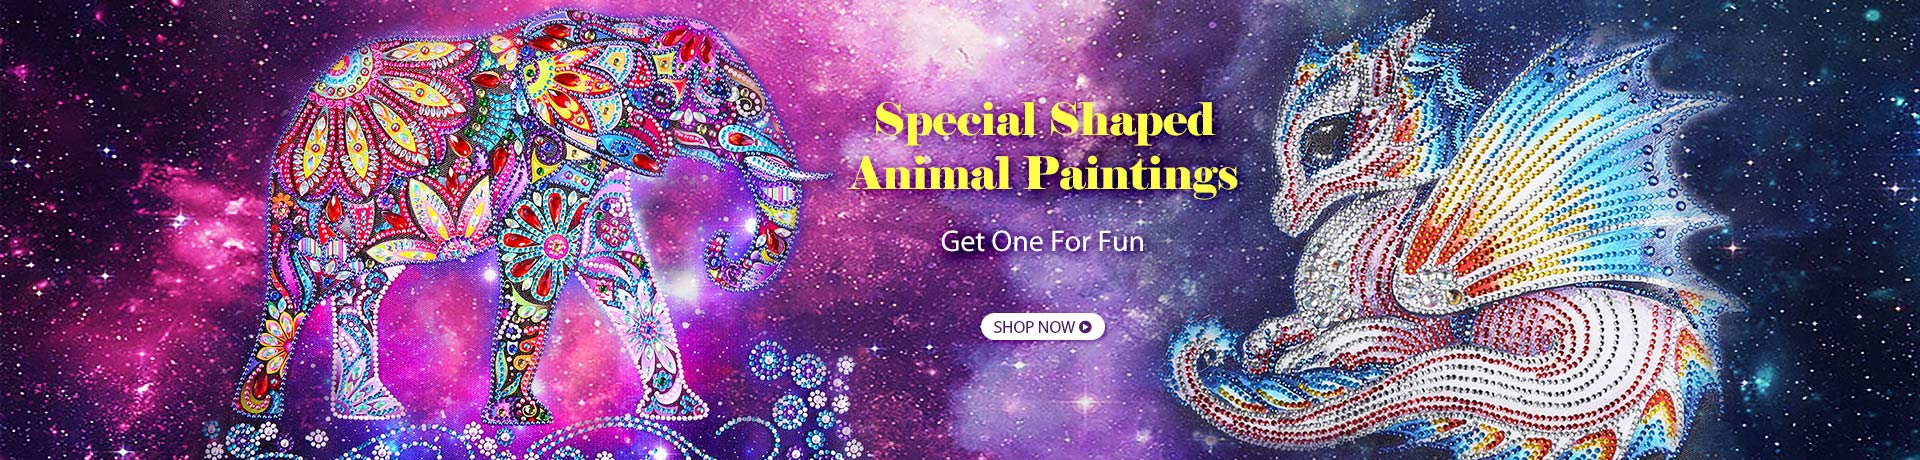 Special Shaped Animals Paintings